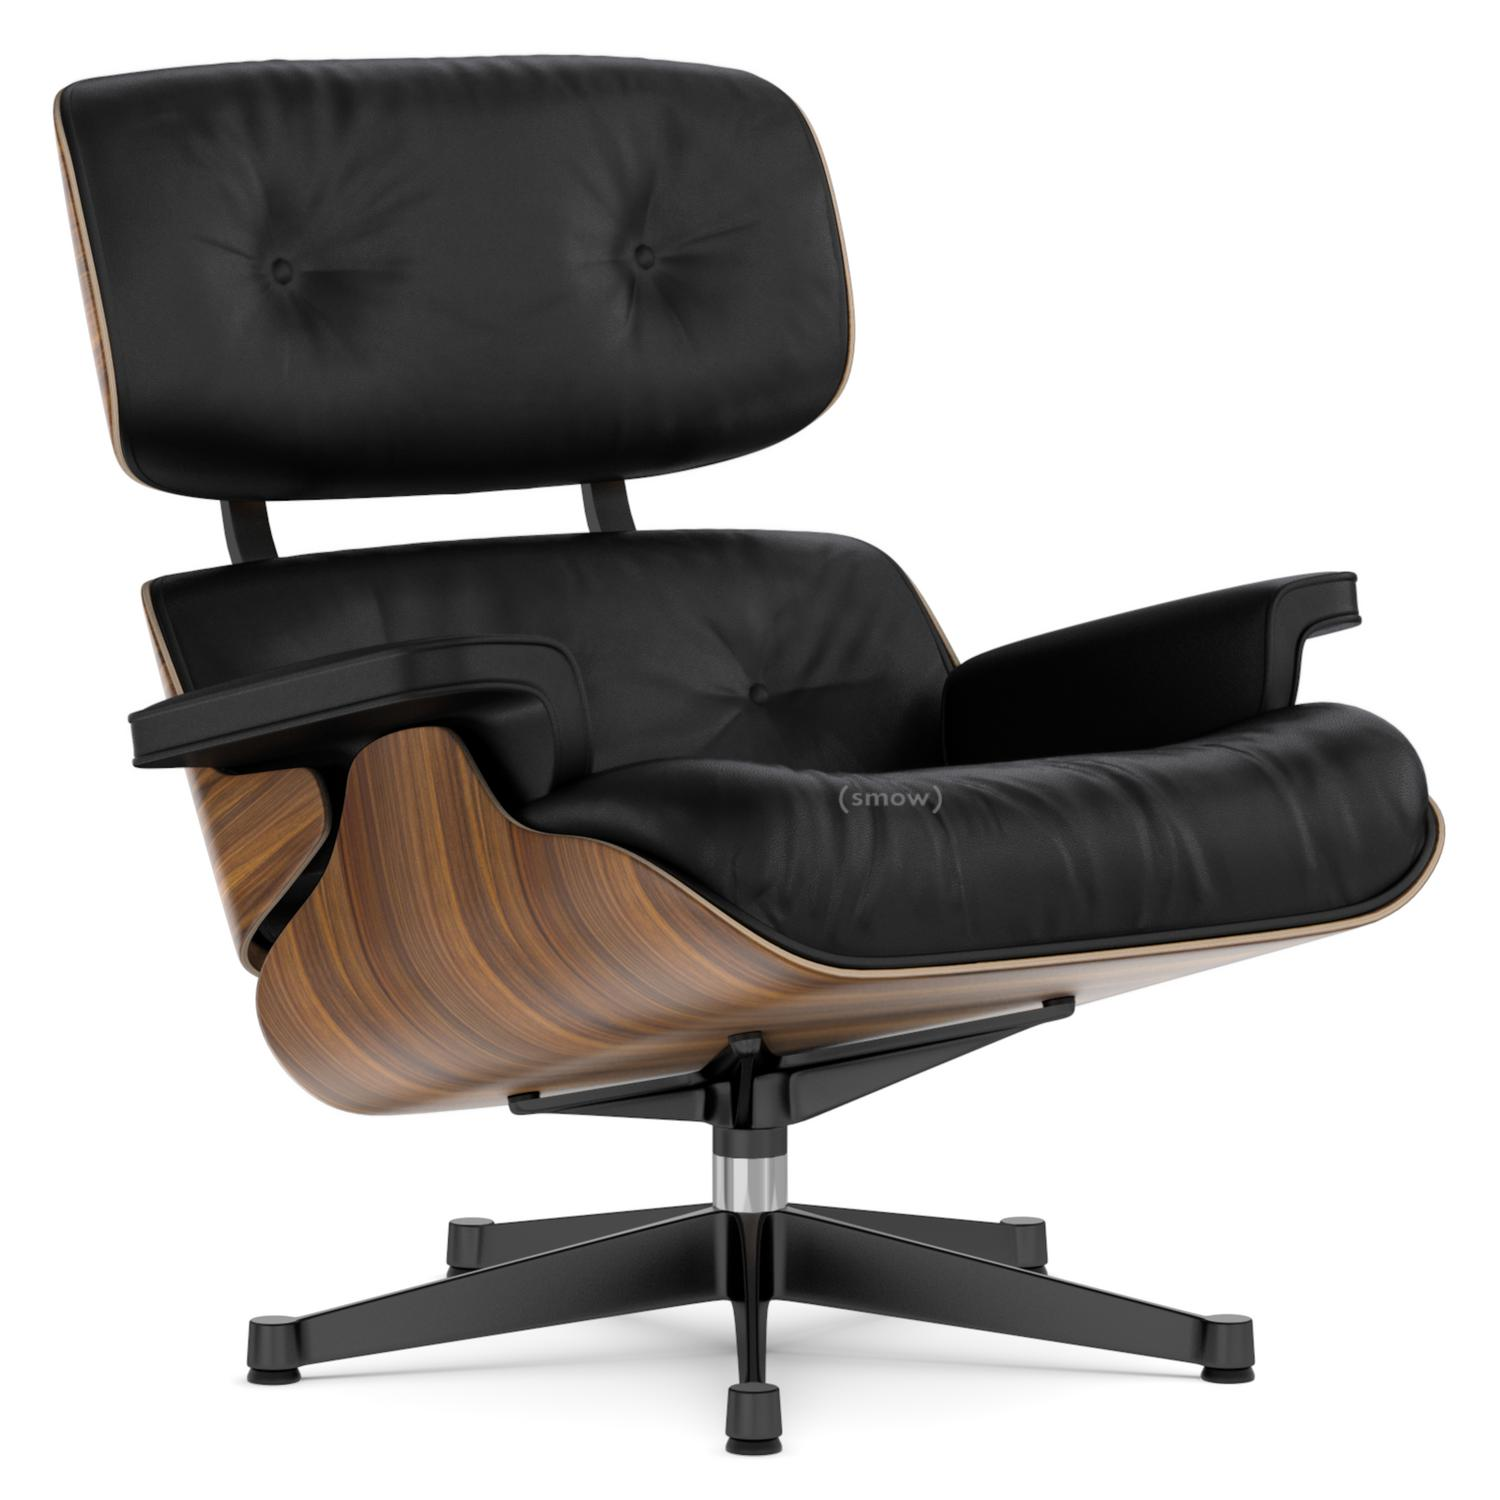 Vitra lounge chair by charles ray eames 1956 designer for Design eames